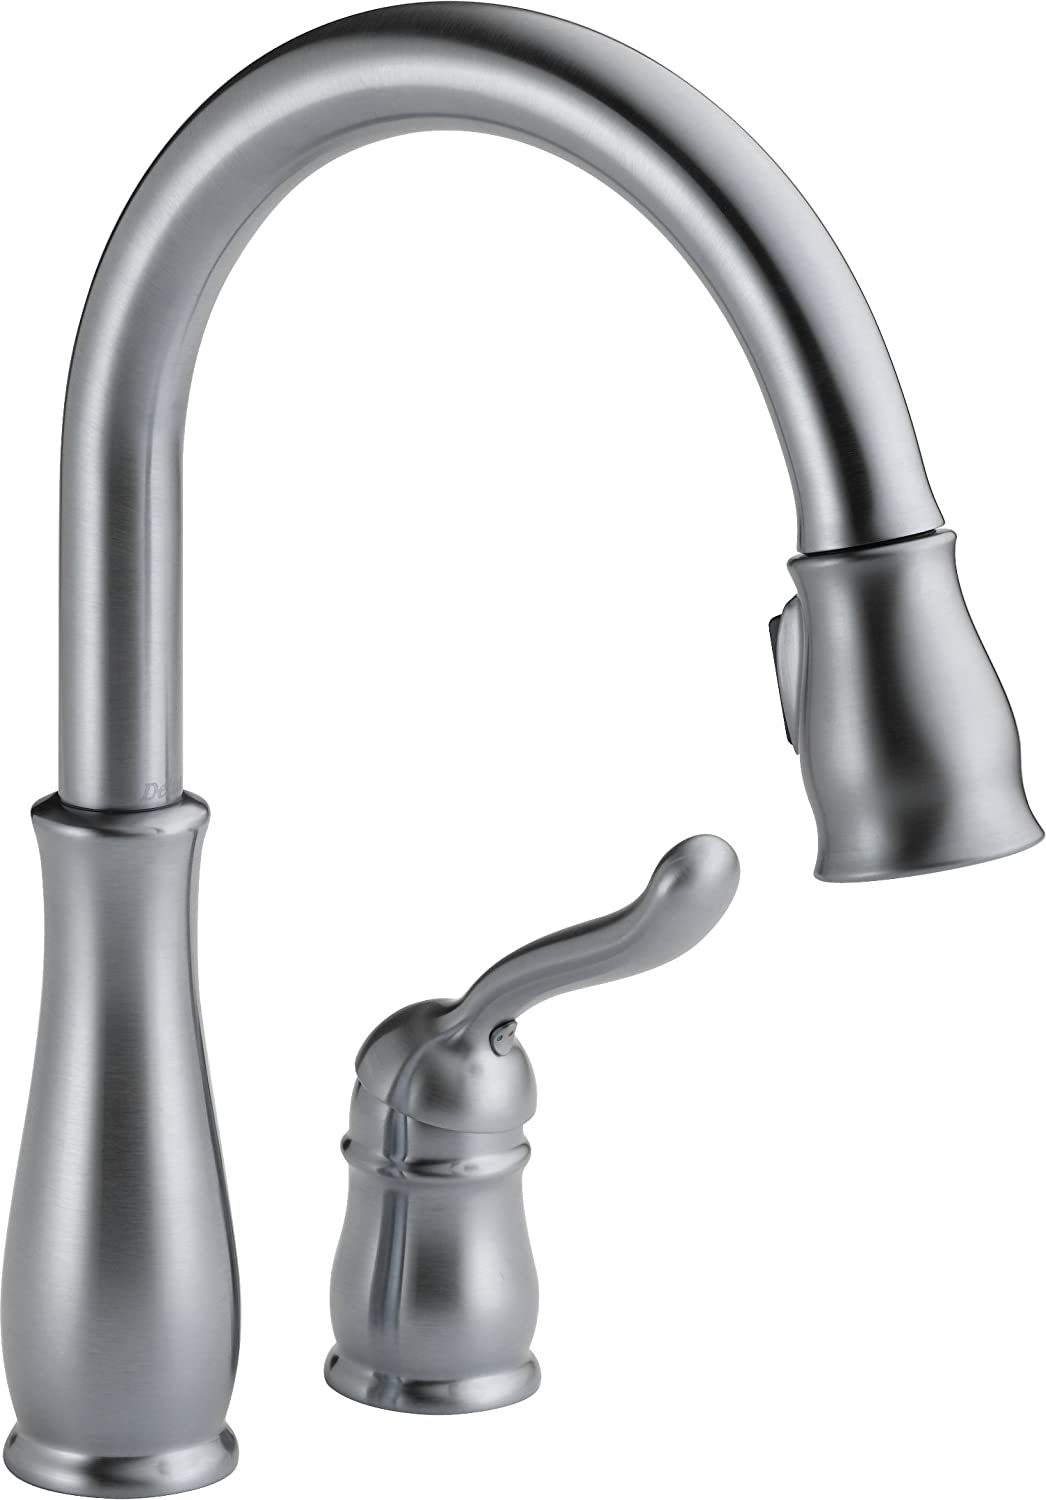 Delta 978-ARWE-DST Leland Single Handle Pull-Down Kitchen Faucet, Arctic Stainless